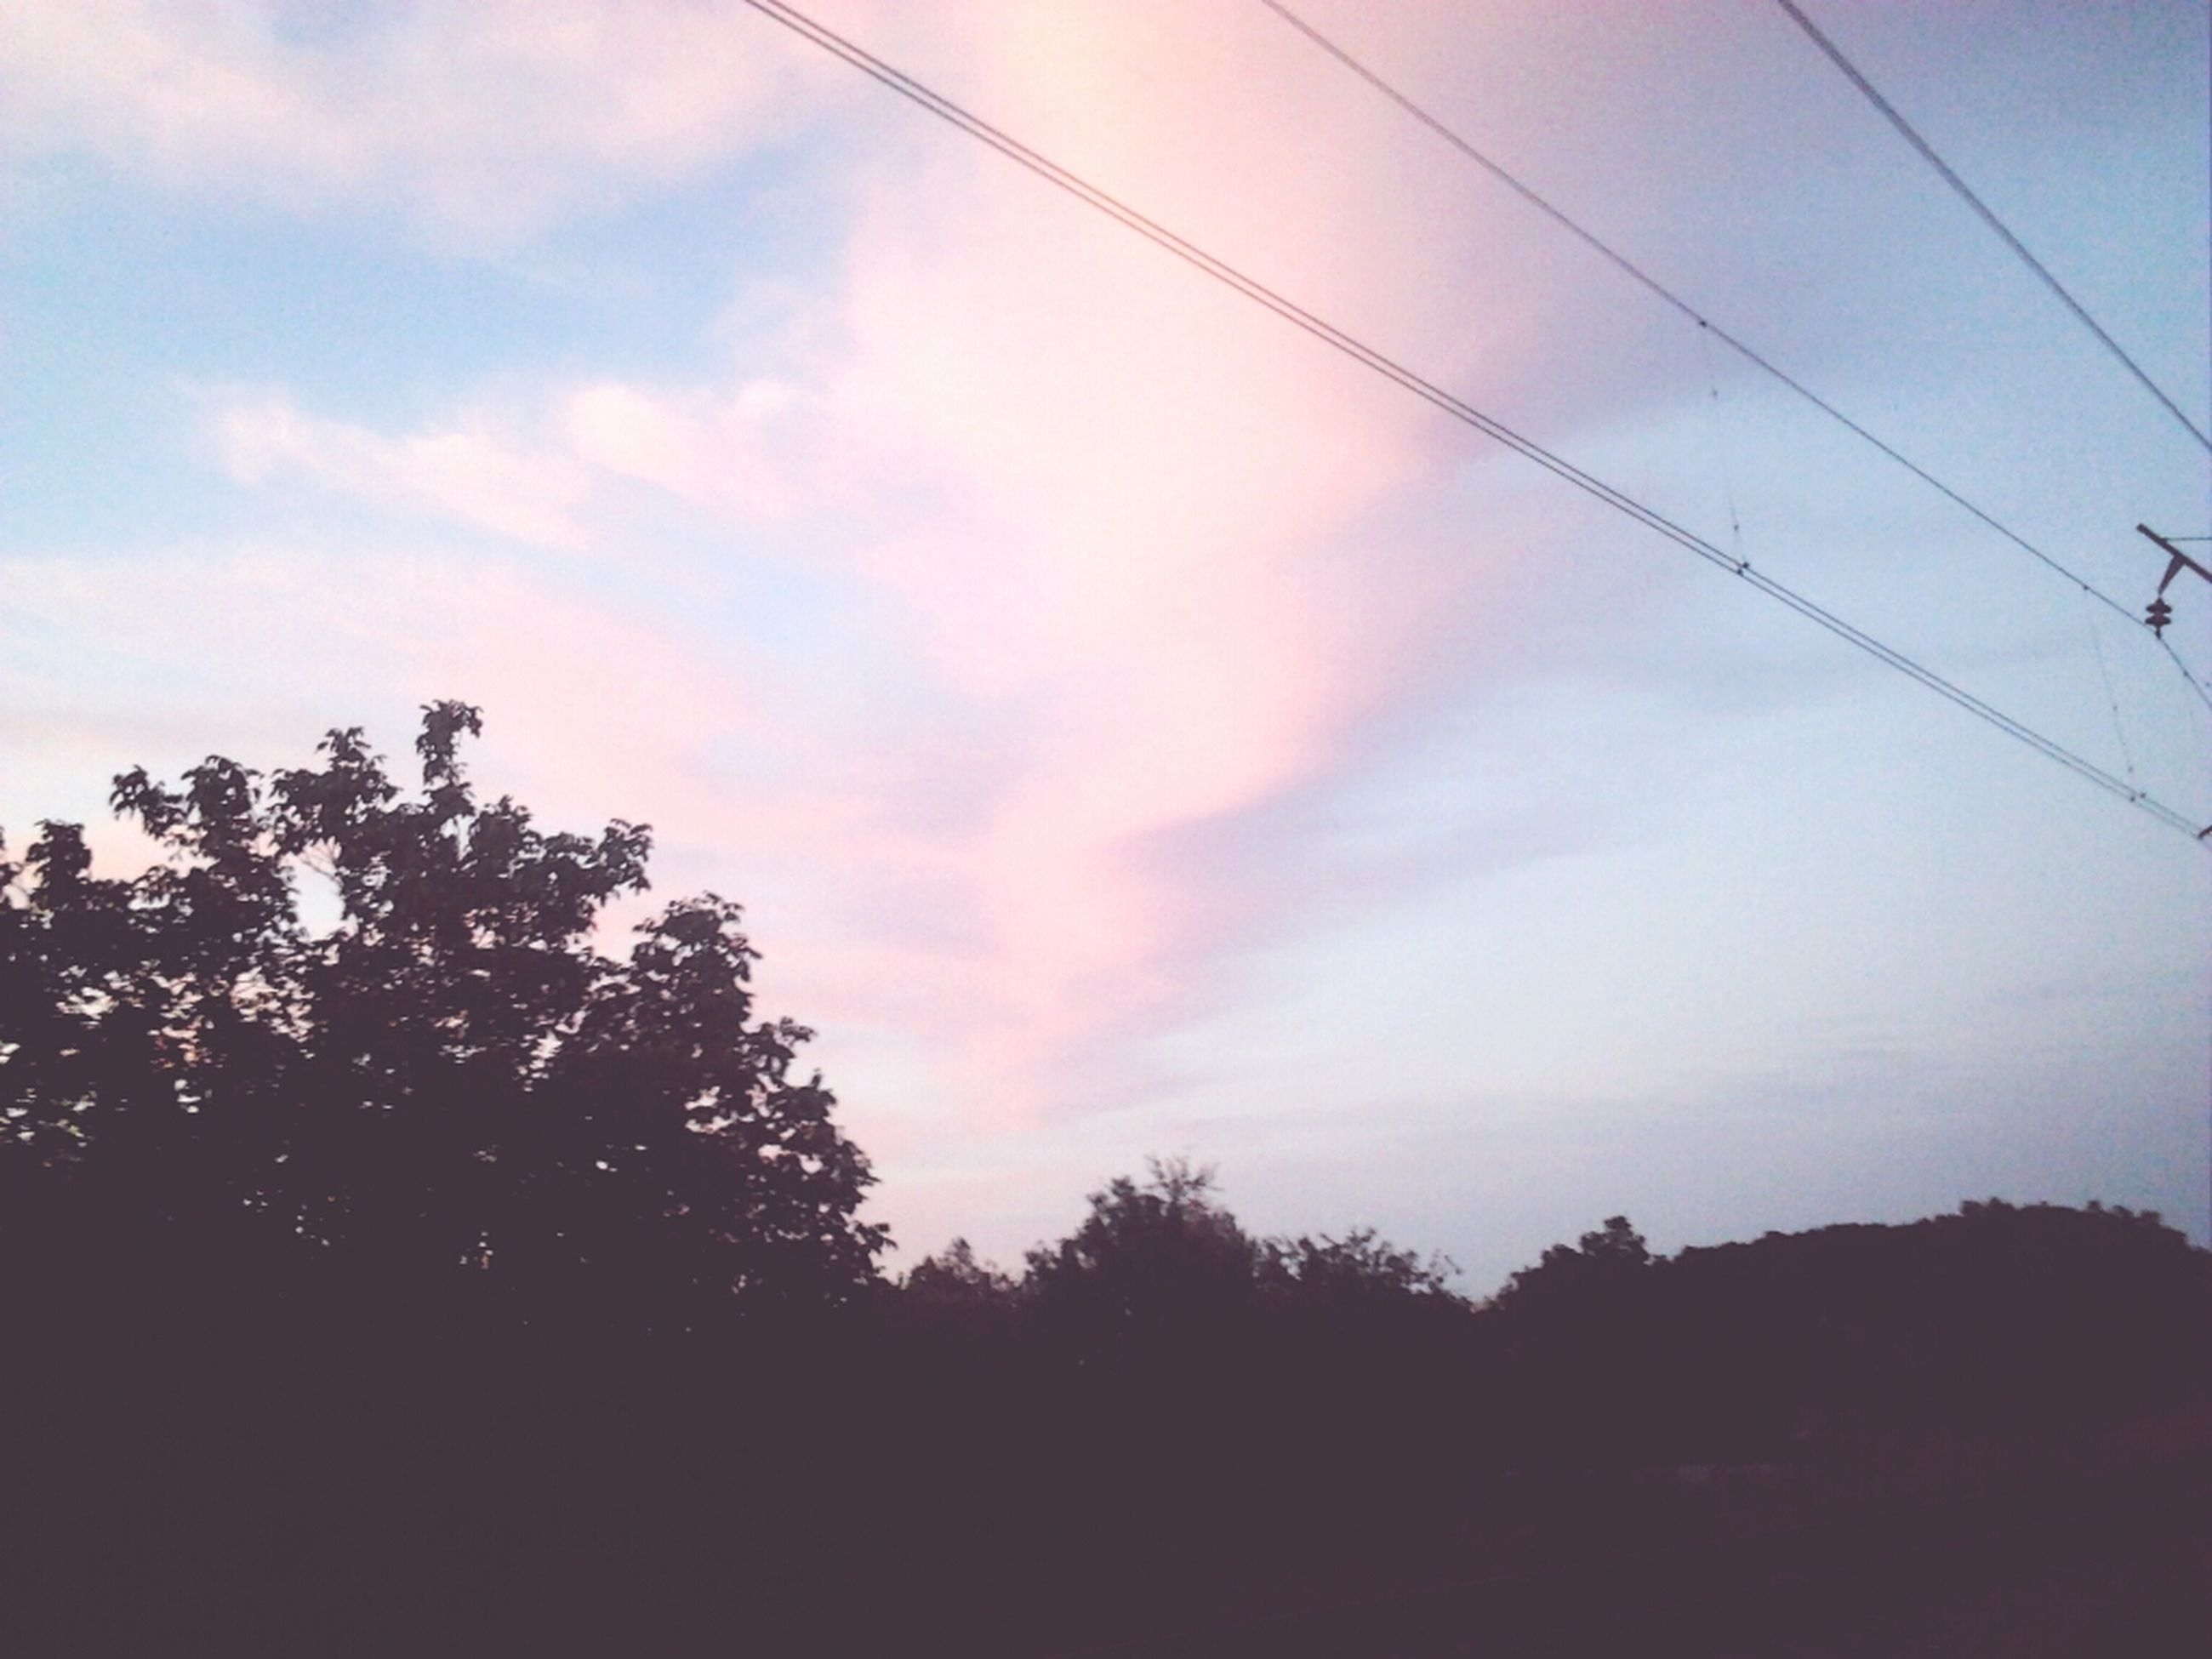 tree, sky, silhouette, tranquility, tranquil scene, cloud - sky, low angle view, scenics, beauty in nature, power line, nature, cloud, sunset, electricity pylon, landscape, cloudy, dusk, outdoors, no people, growth